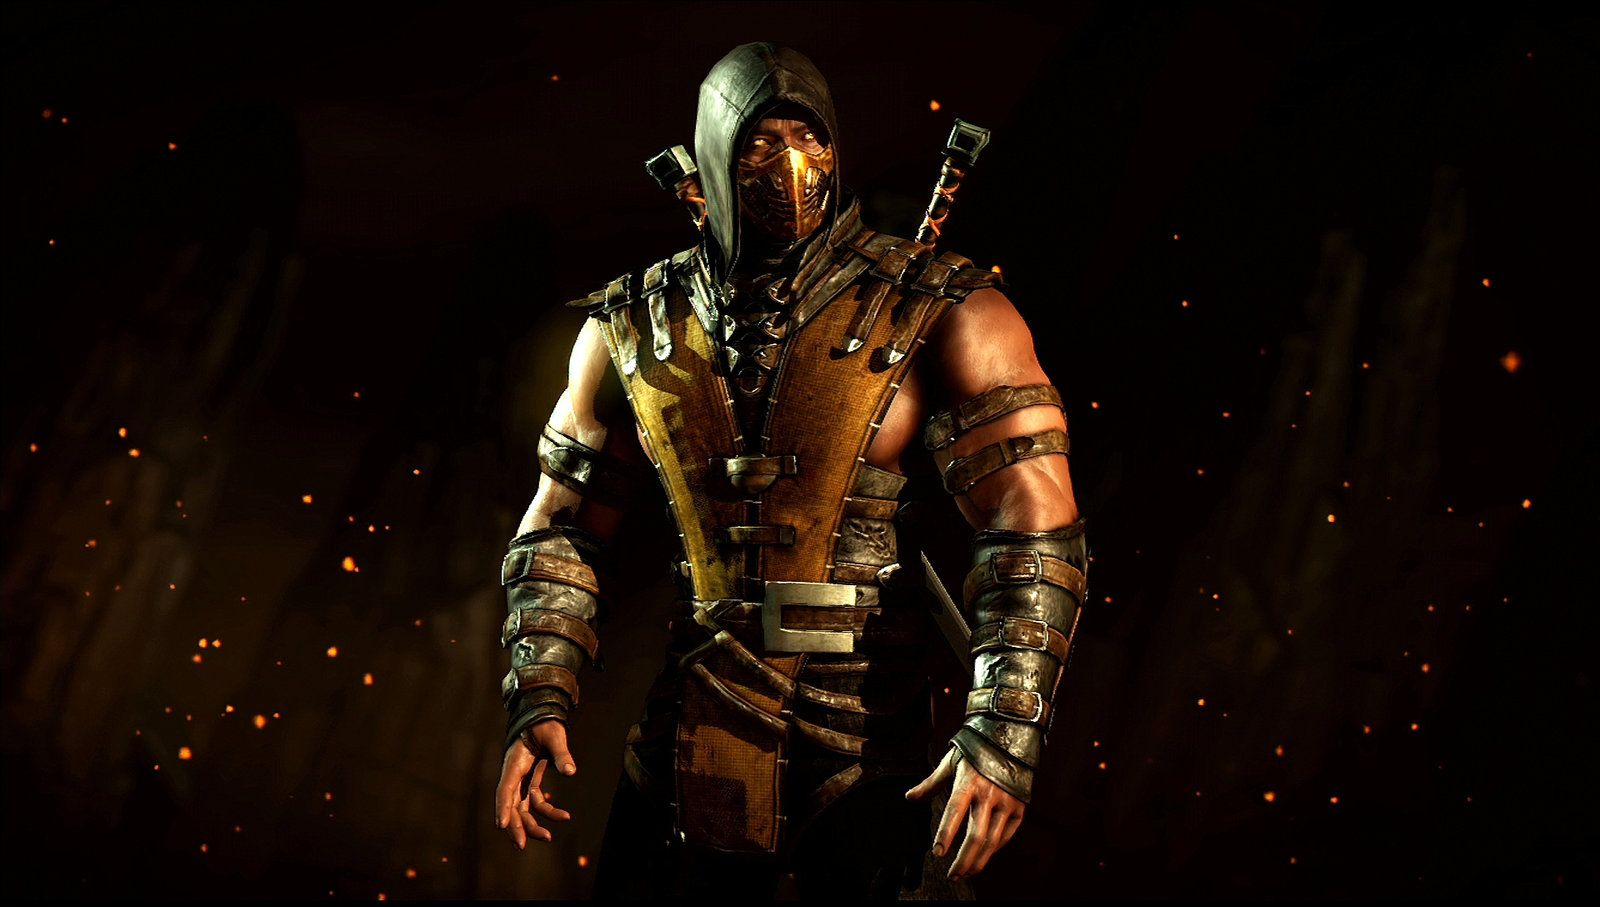 Mortal kombat x scorpion wallpapers top free mortal - Mortal kombat scorpion wallpaper ...